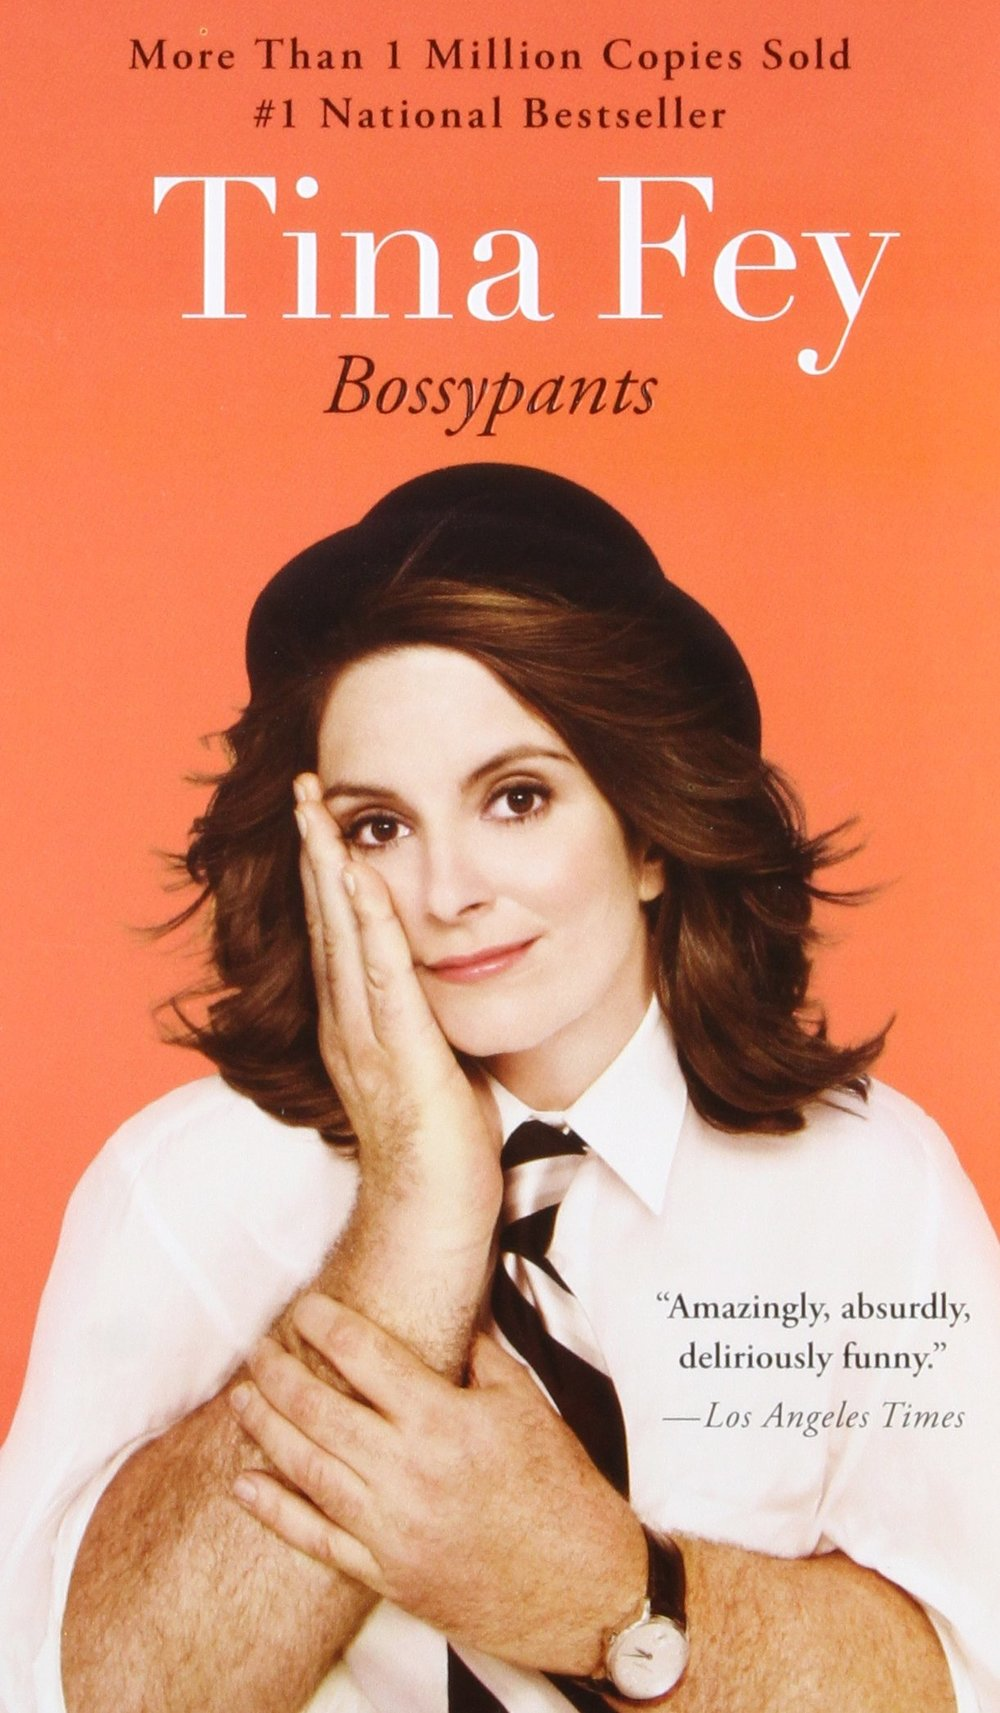 Bossy Pants - By Tina Fey